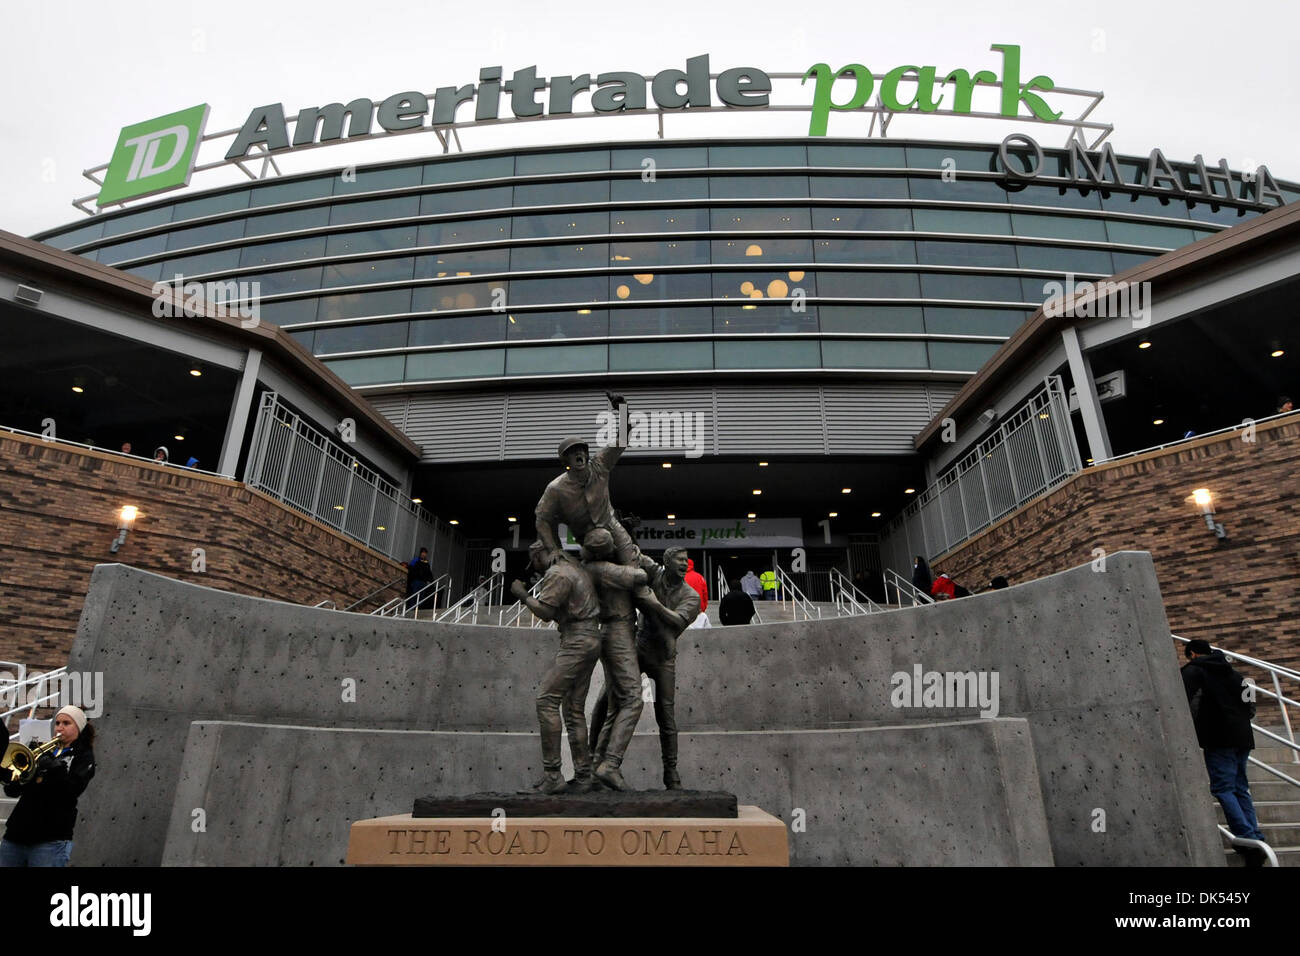 Td Ameritrade Stock Photos & Td Ameritrade Stock Images - Page 3 - Alamy